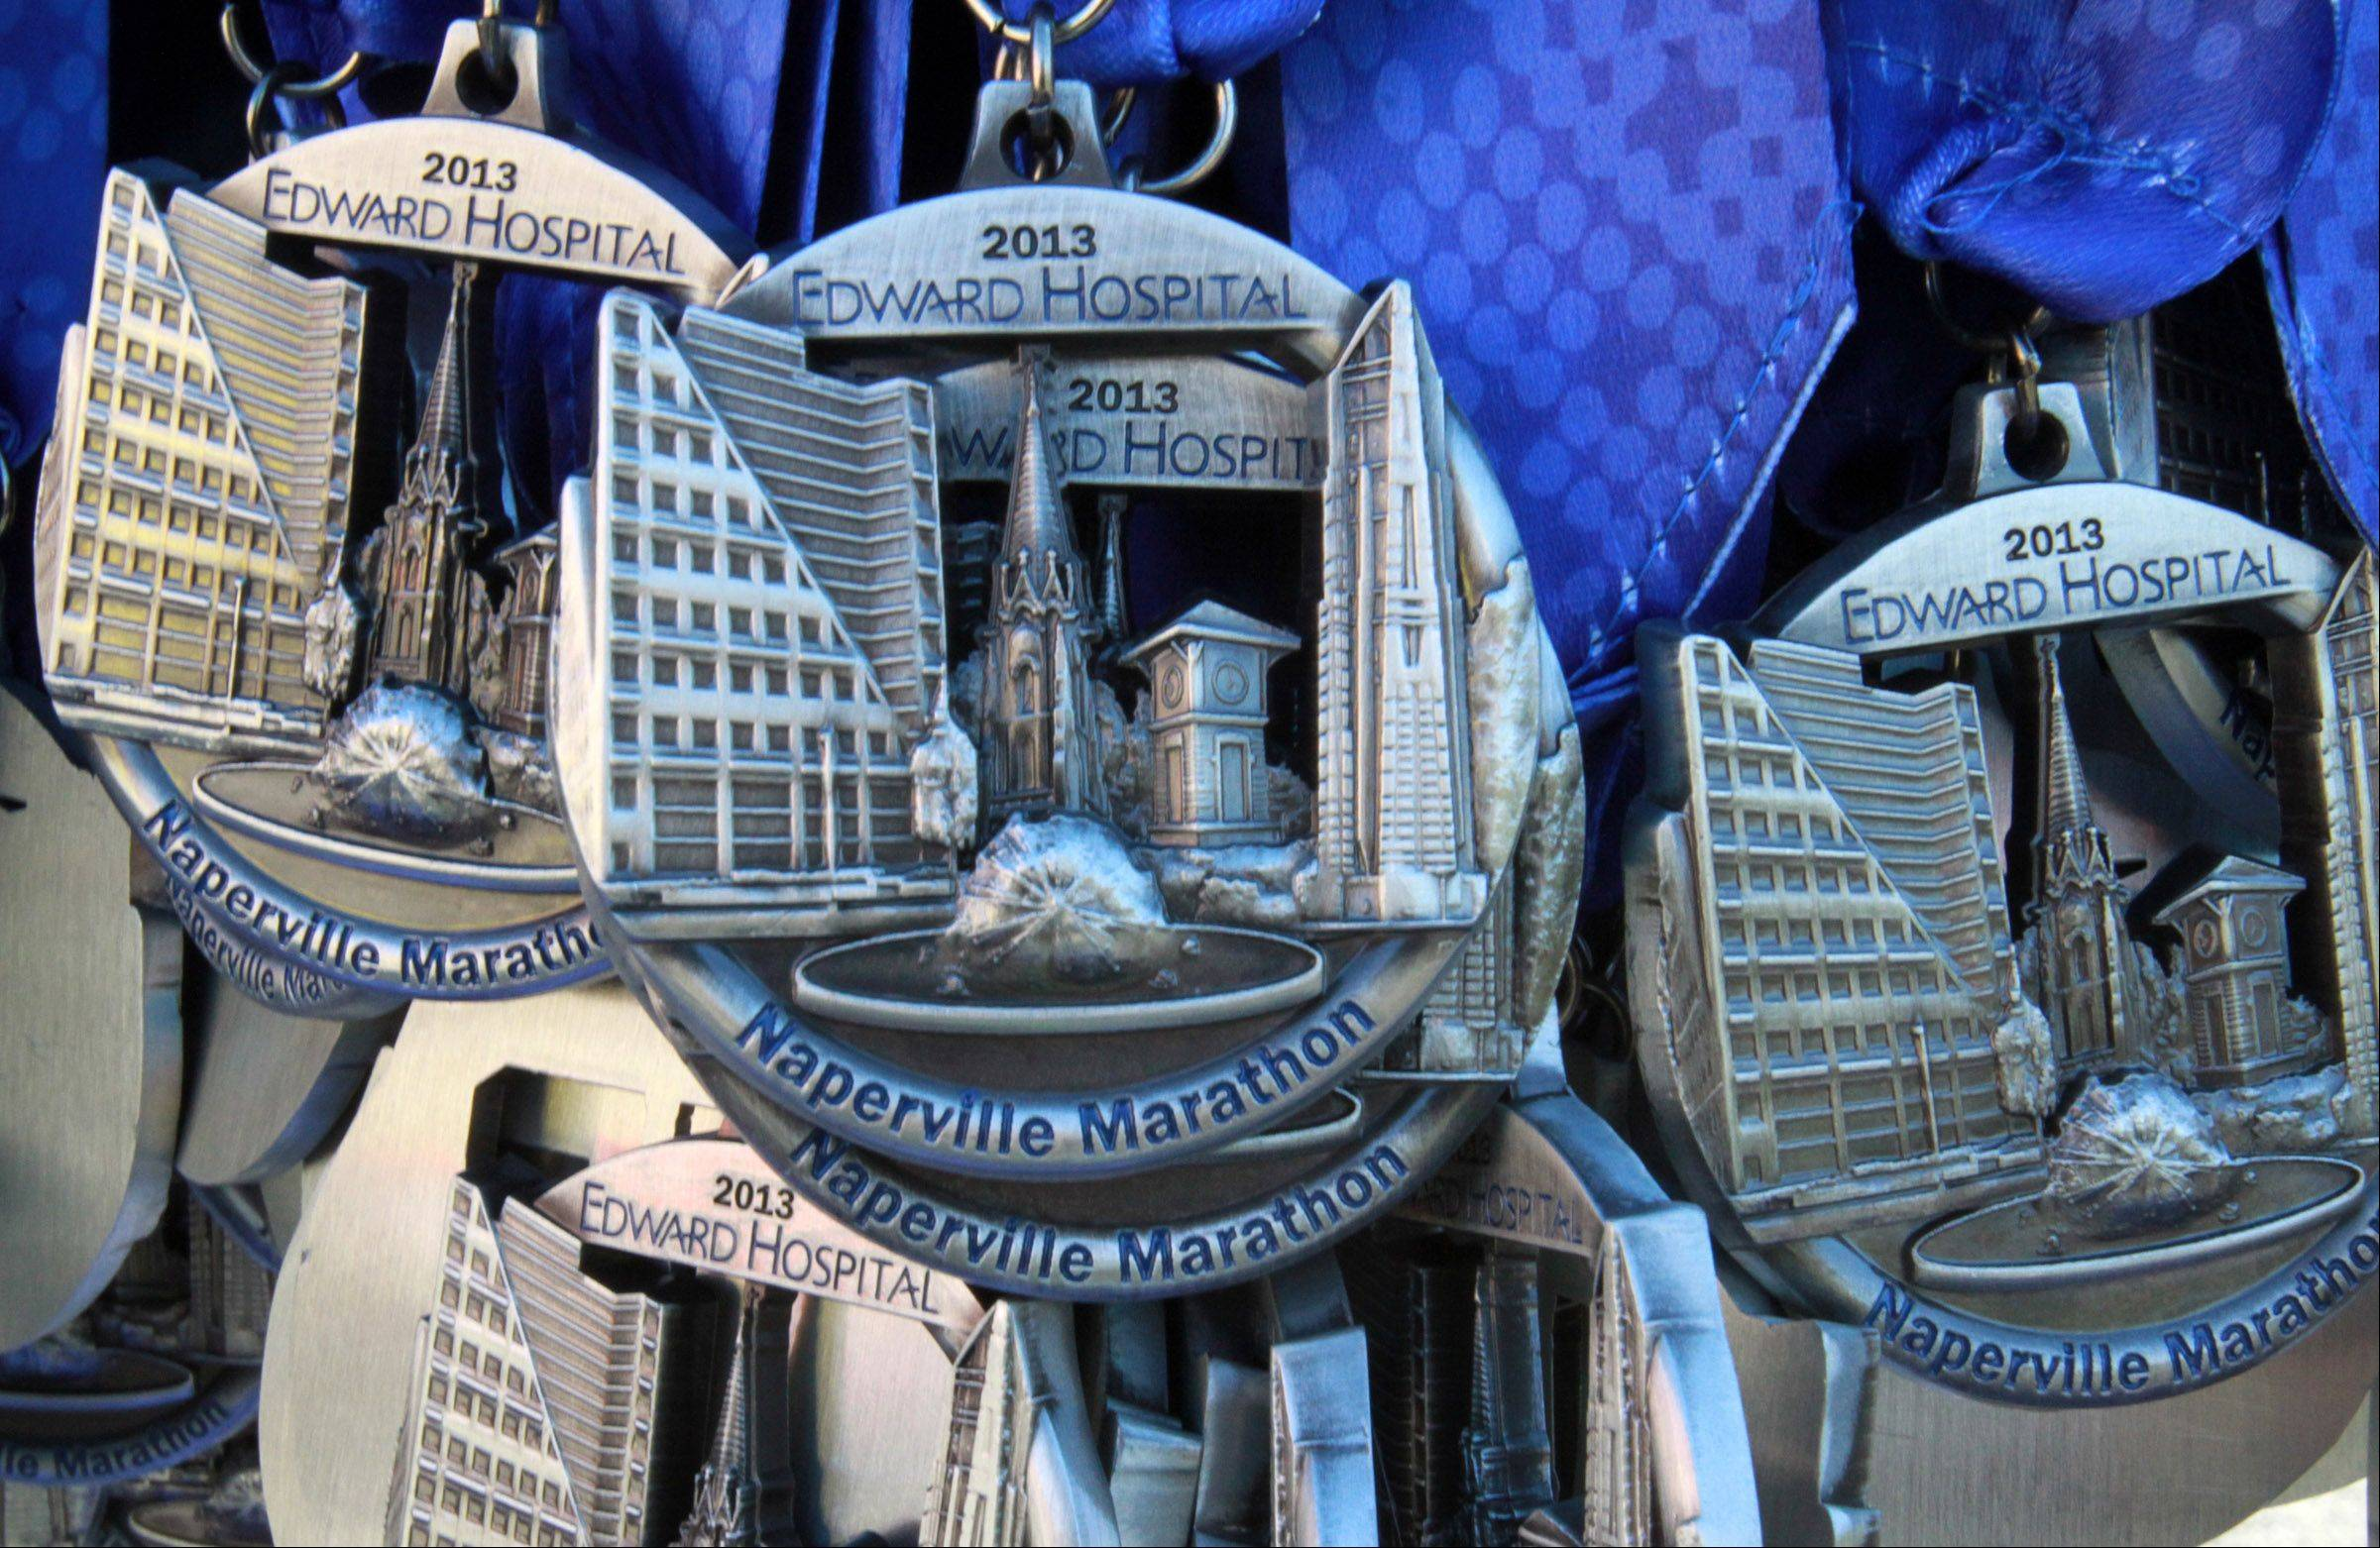 Each runner who completed the race received an Edward Hospital Naperville Marathon award on Sunday, November 10, 2013.